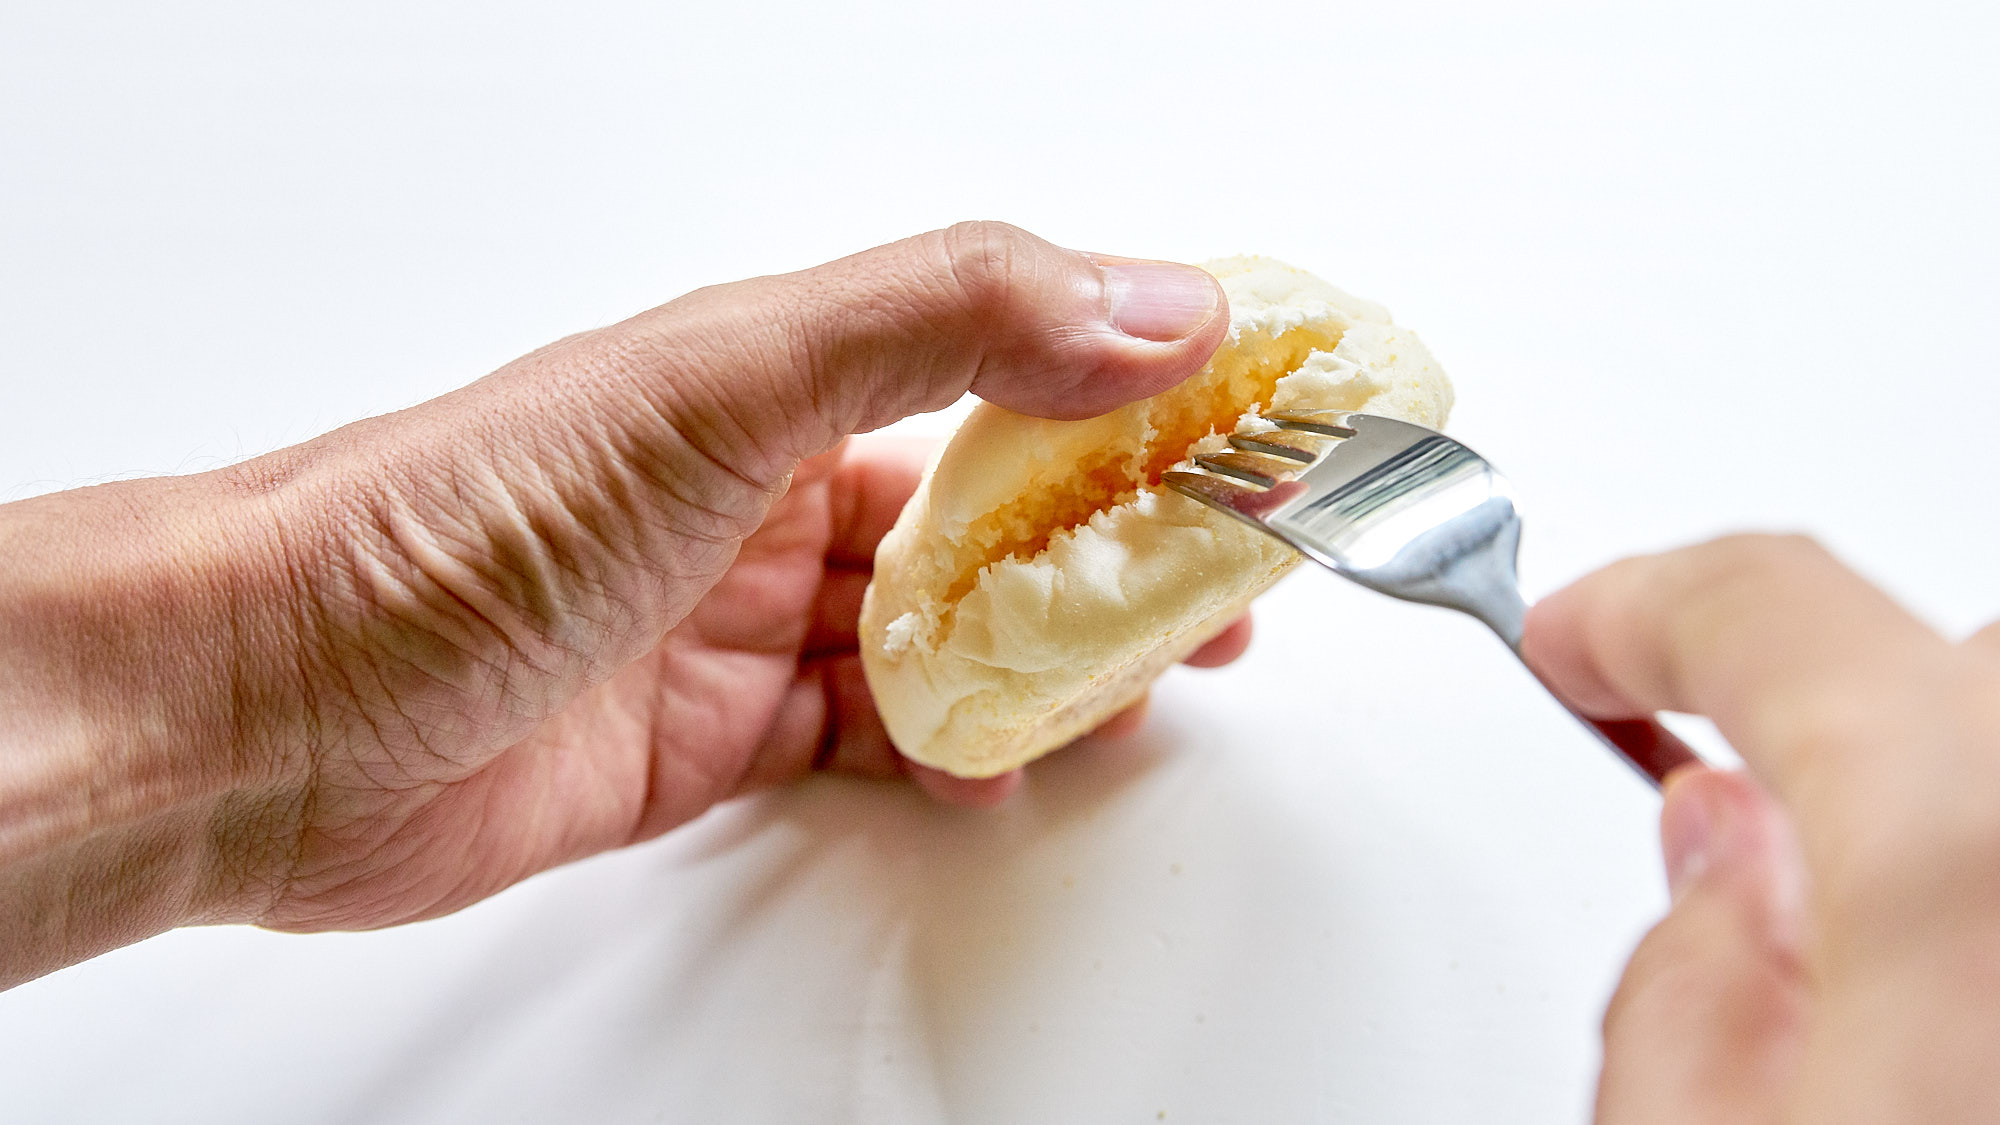 Split the English Muffins in half with a fork